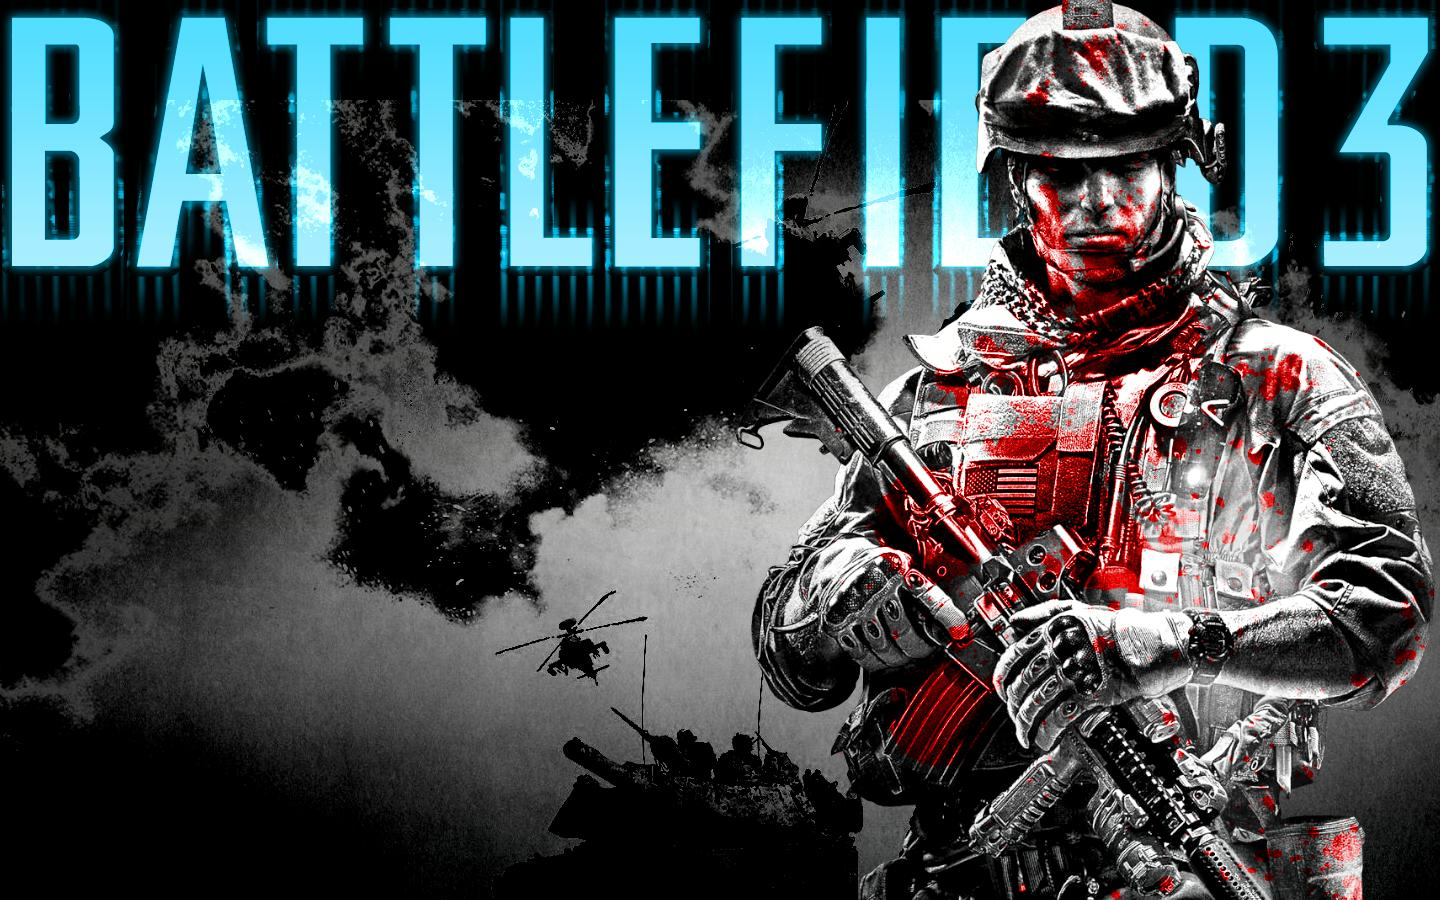 http://3.bp.blogspot.com/-rjVYONbbcs8/TkoYiS9CCuI/AAAAAAAAArw/tmIjSYn-UR8/s1600/Battlefield+3+Wallpaper+game+download.jpg